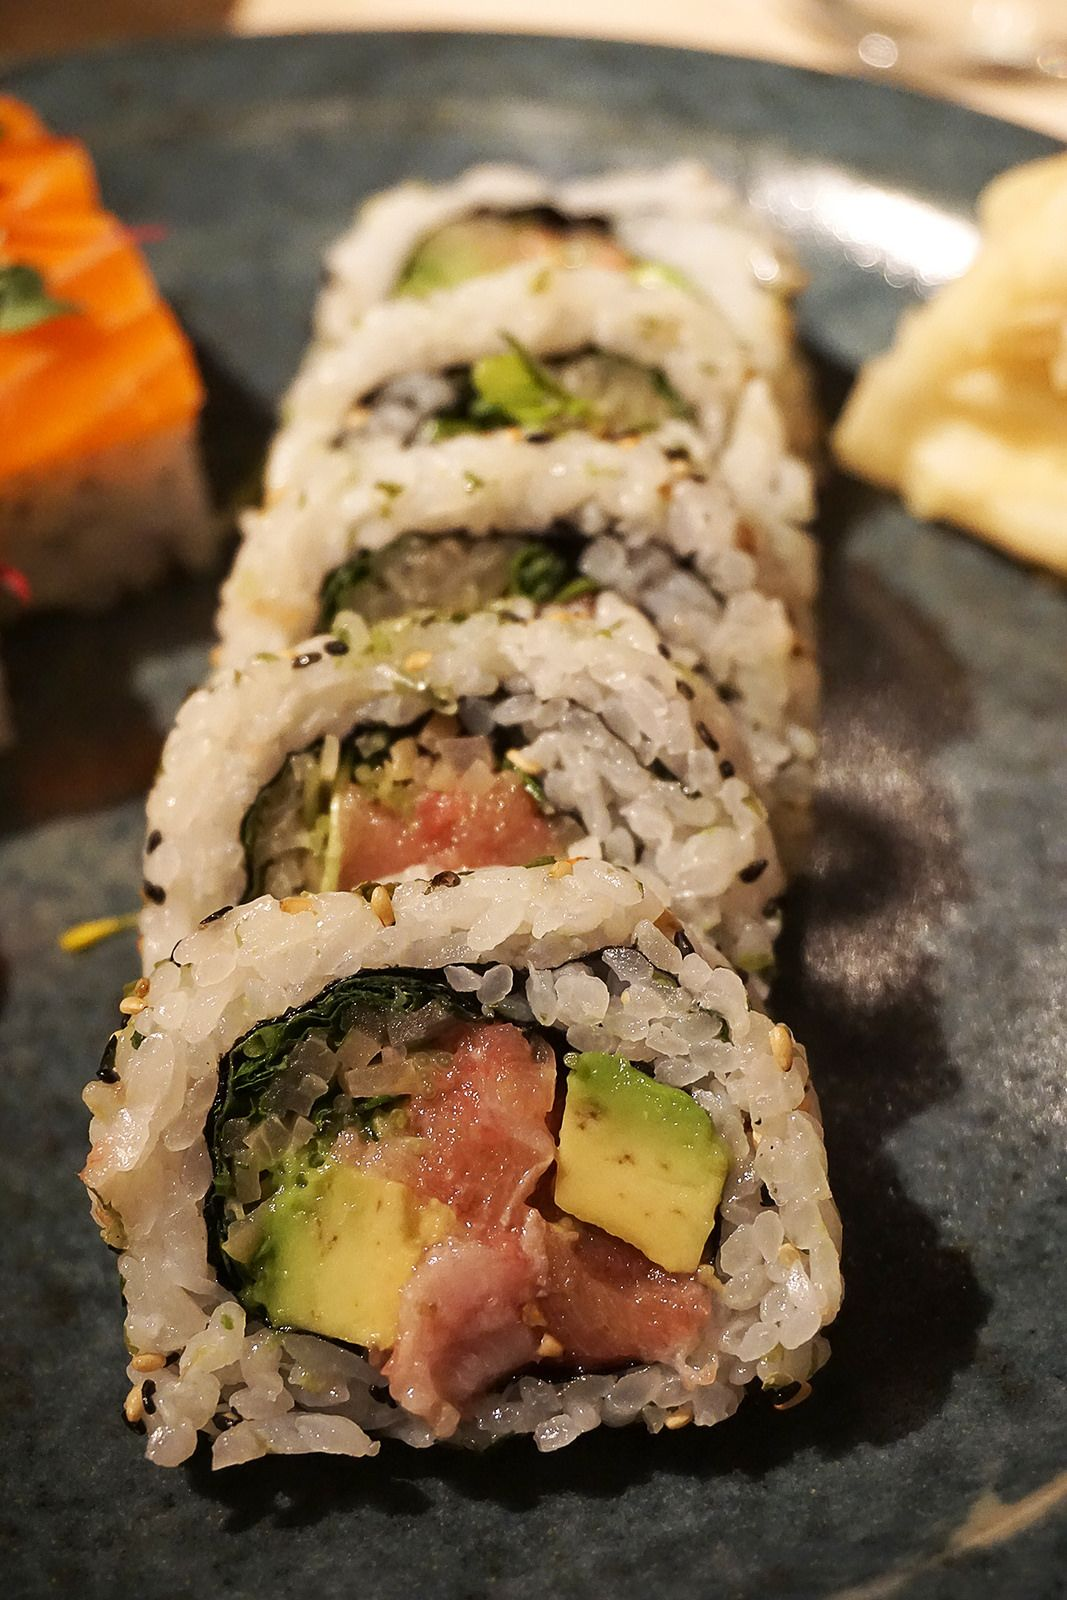 Fatty Tuna Maki Sushi Rolls At Sake No Hana Mayfair London